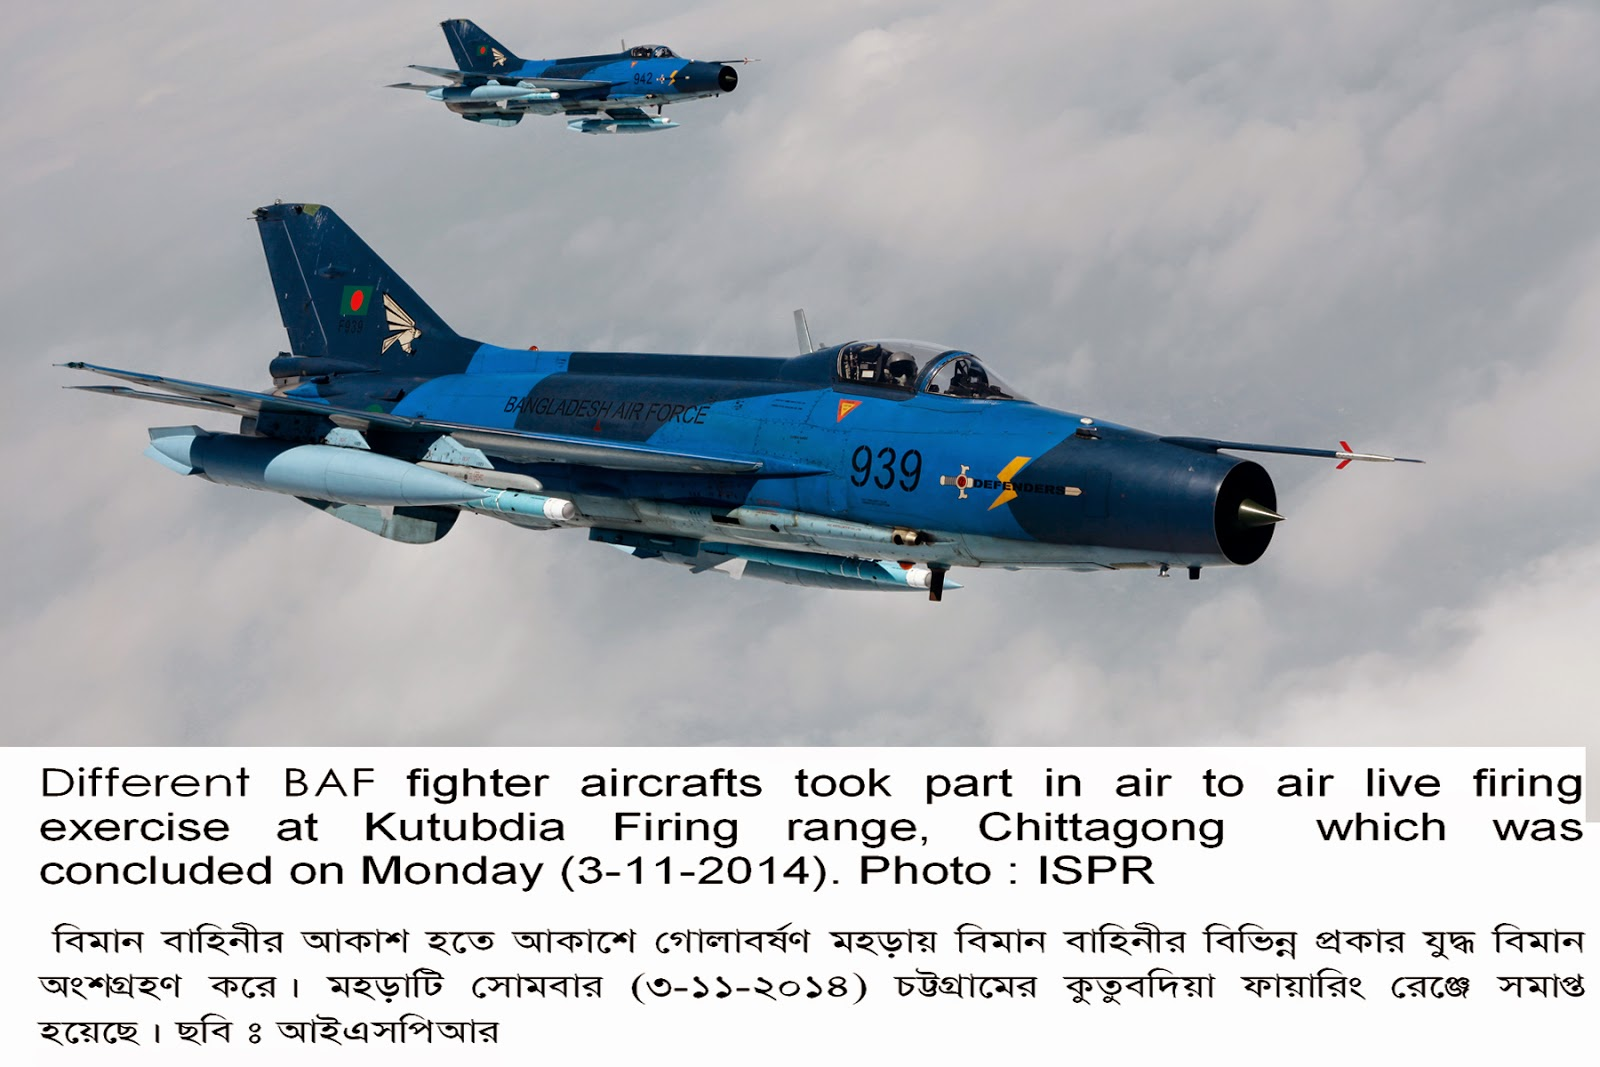 BANGLADESH AIR FORCE CONCLUDES AIR TO AIR FIRING